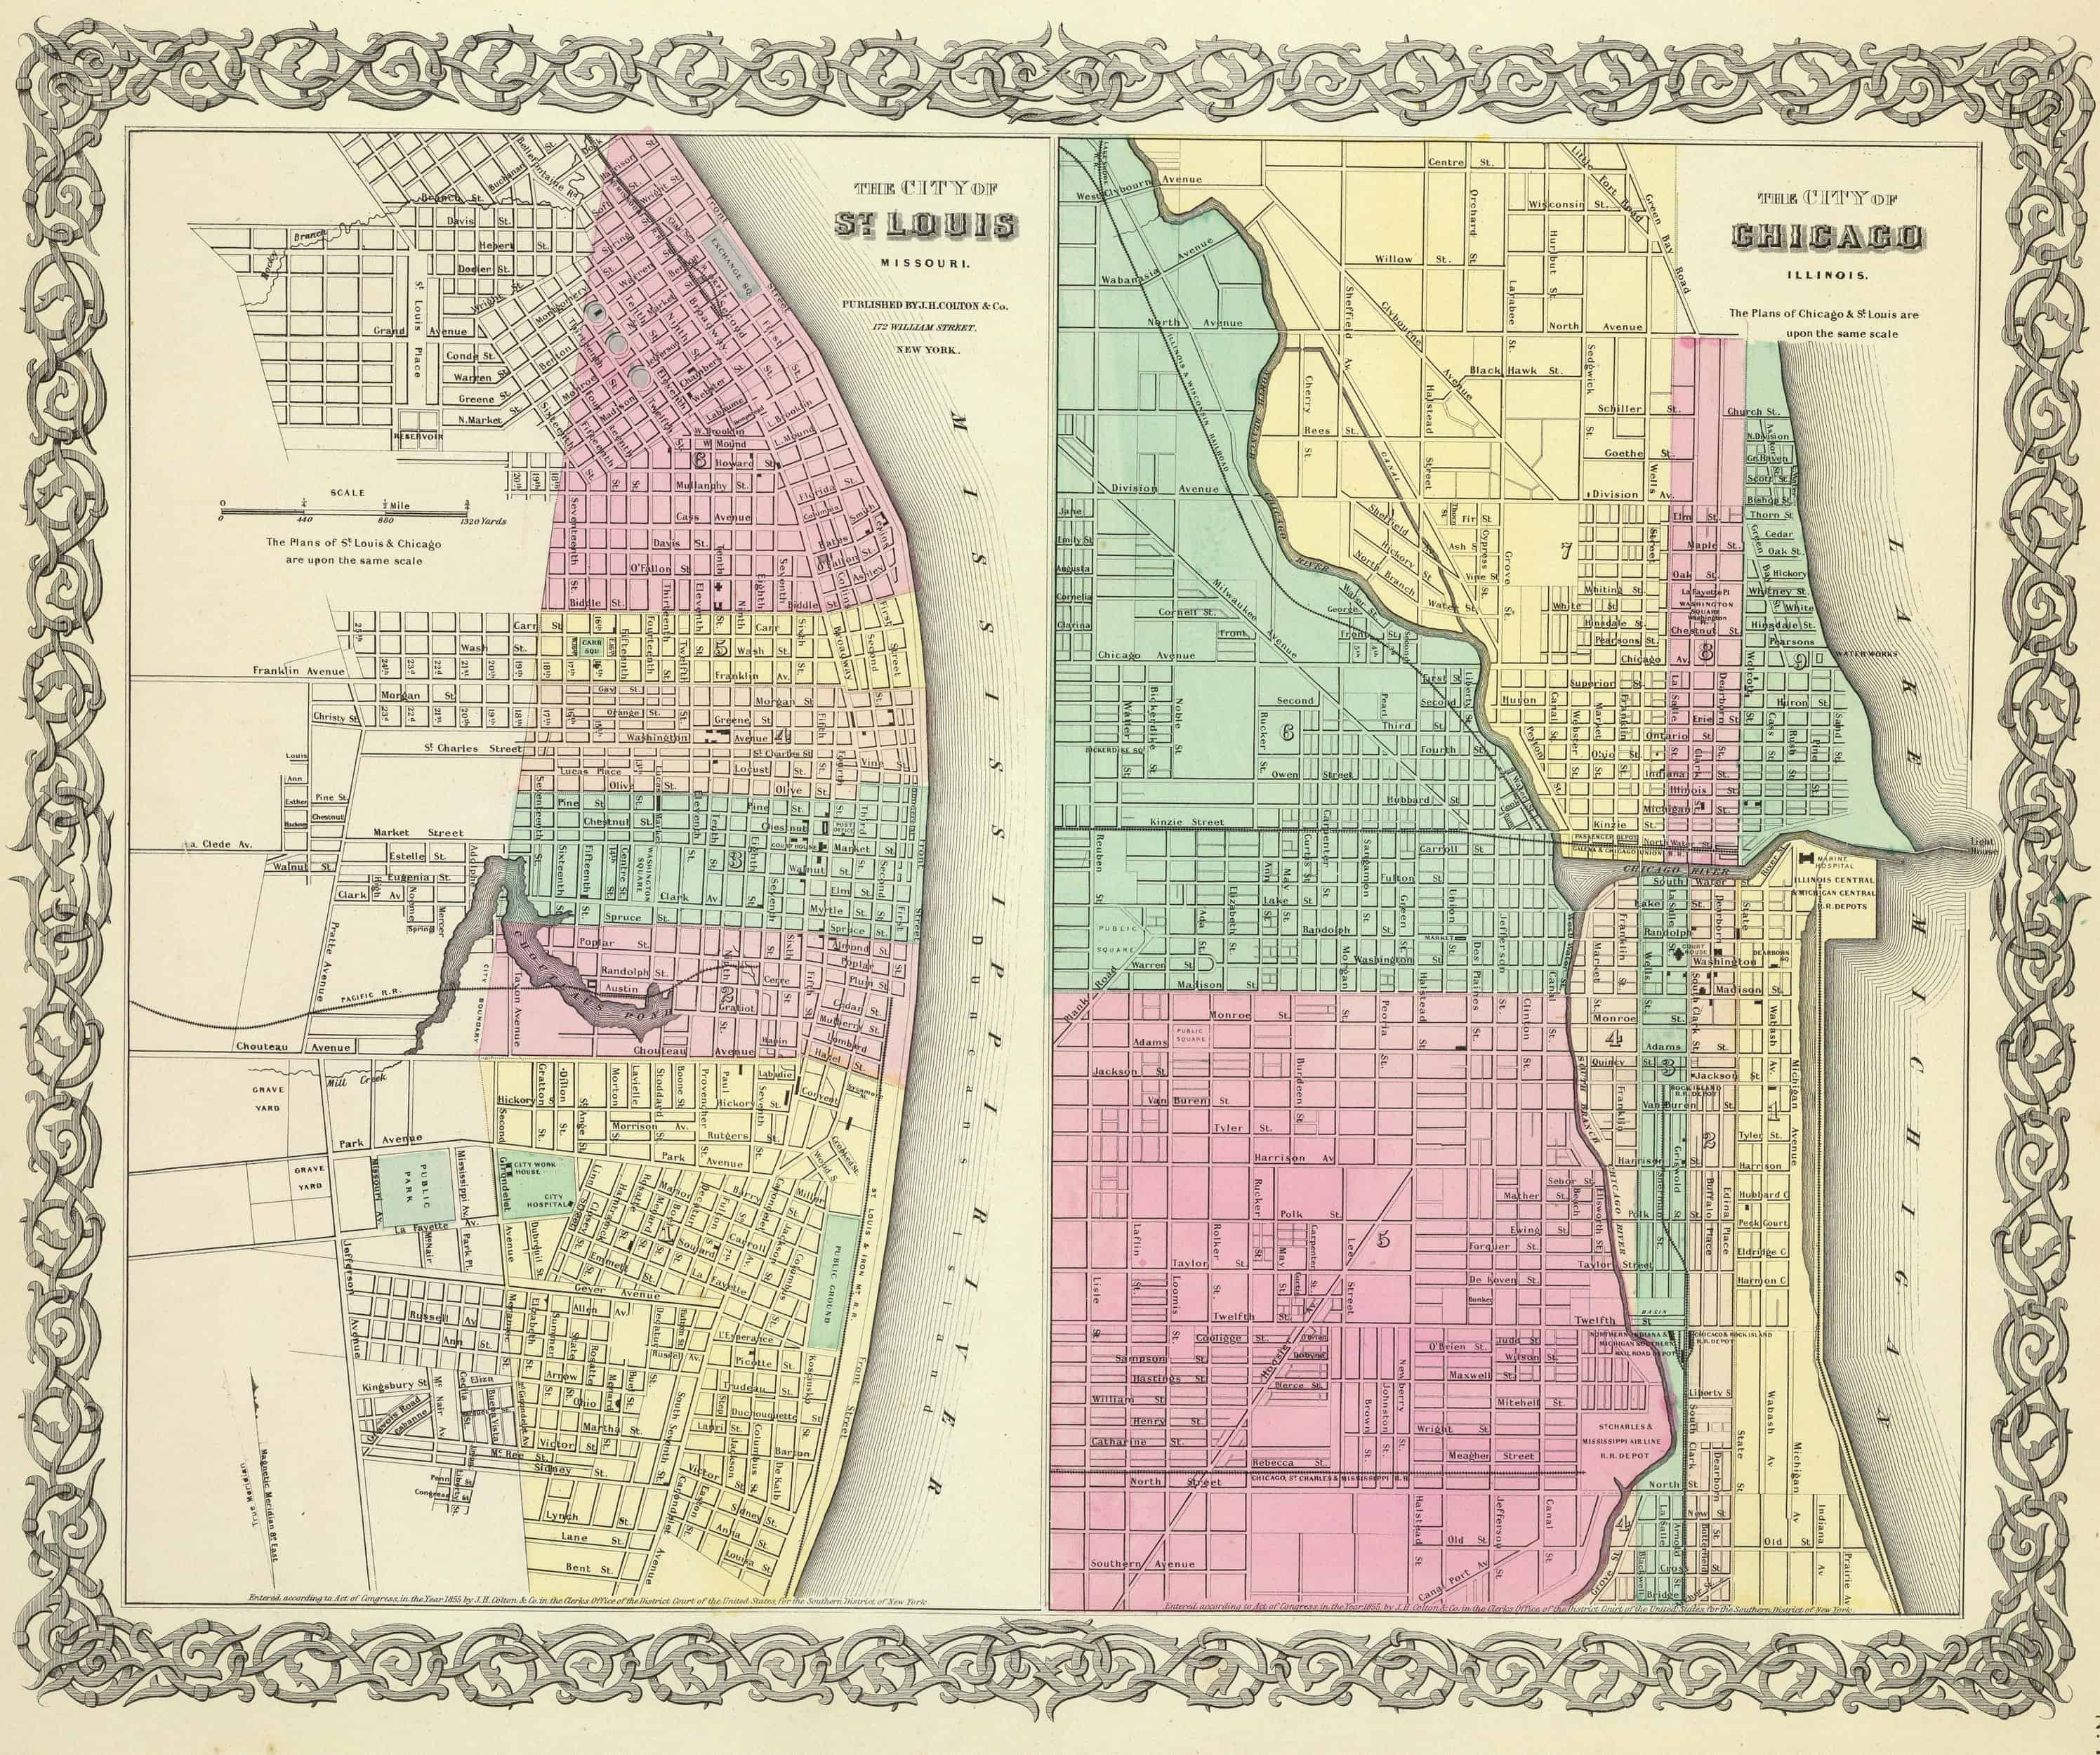 Old Historical City, County and State Maps of Missouri on mi map, et map, iowa map, mei map, tn map, vt map, ri map, sd map, wv map, nee map, ma map, ak map, nh map, pa map, oklahoma map, state map, ks map, ar map, moscow map, ne map,